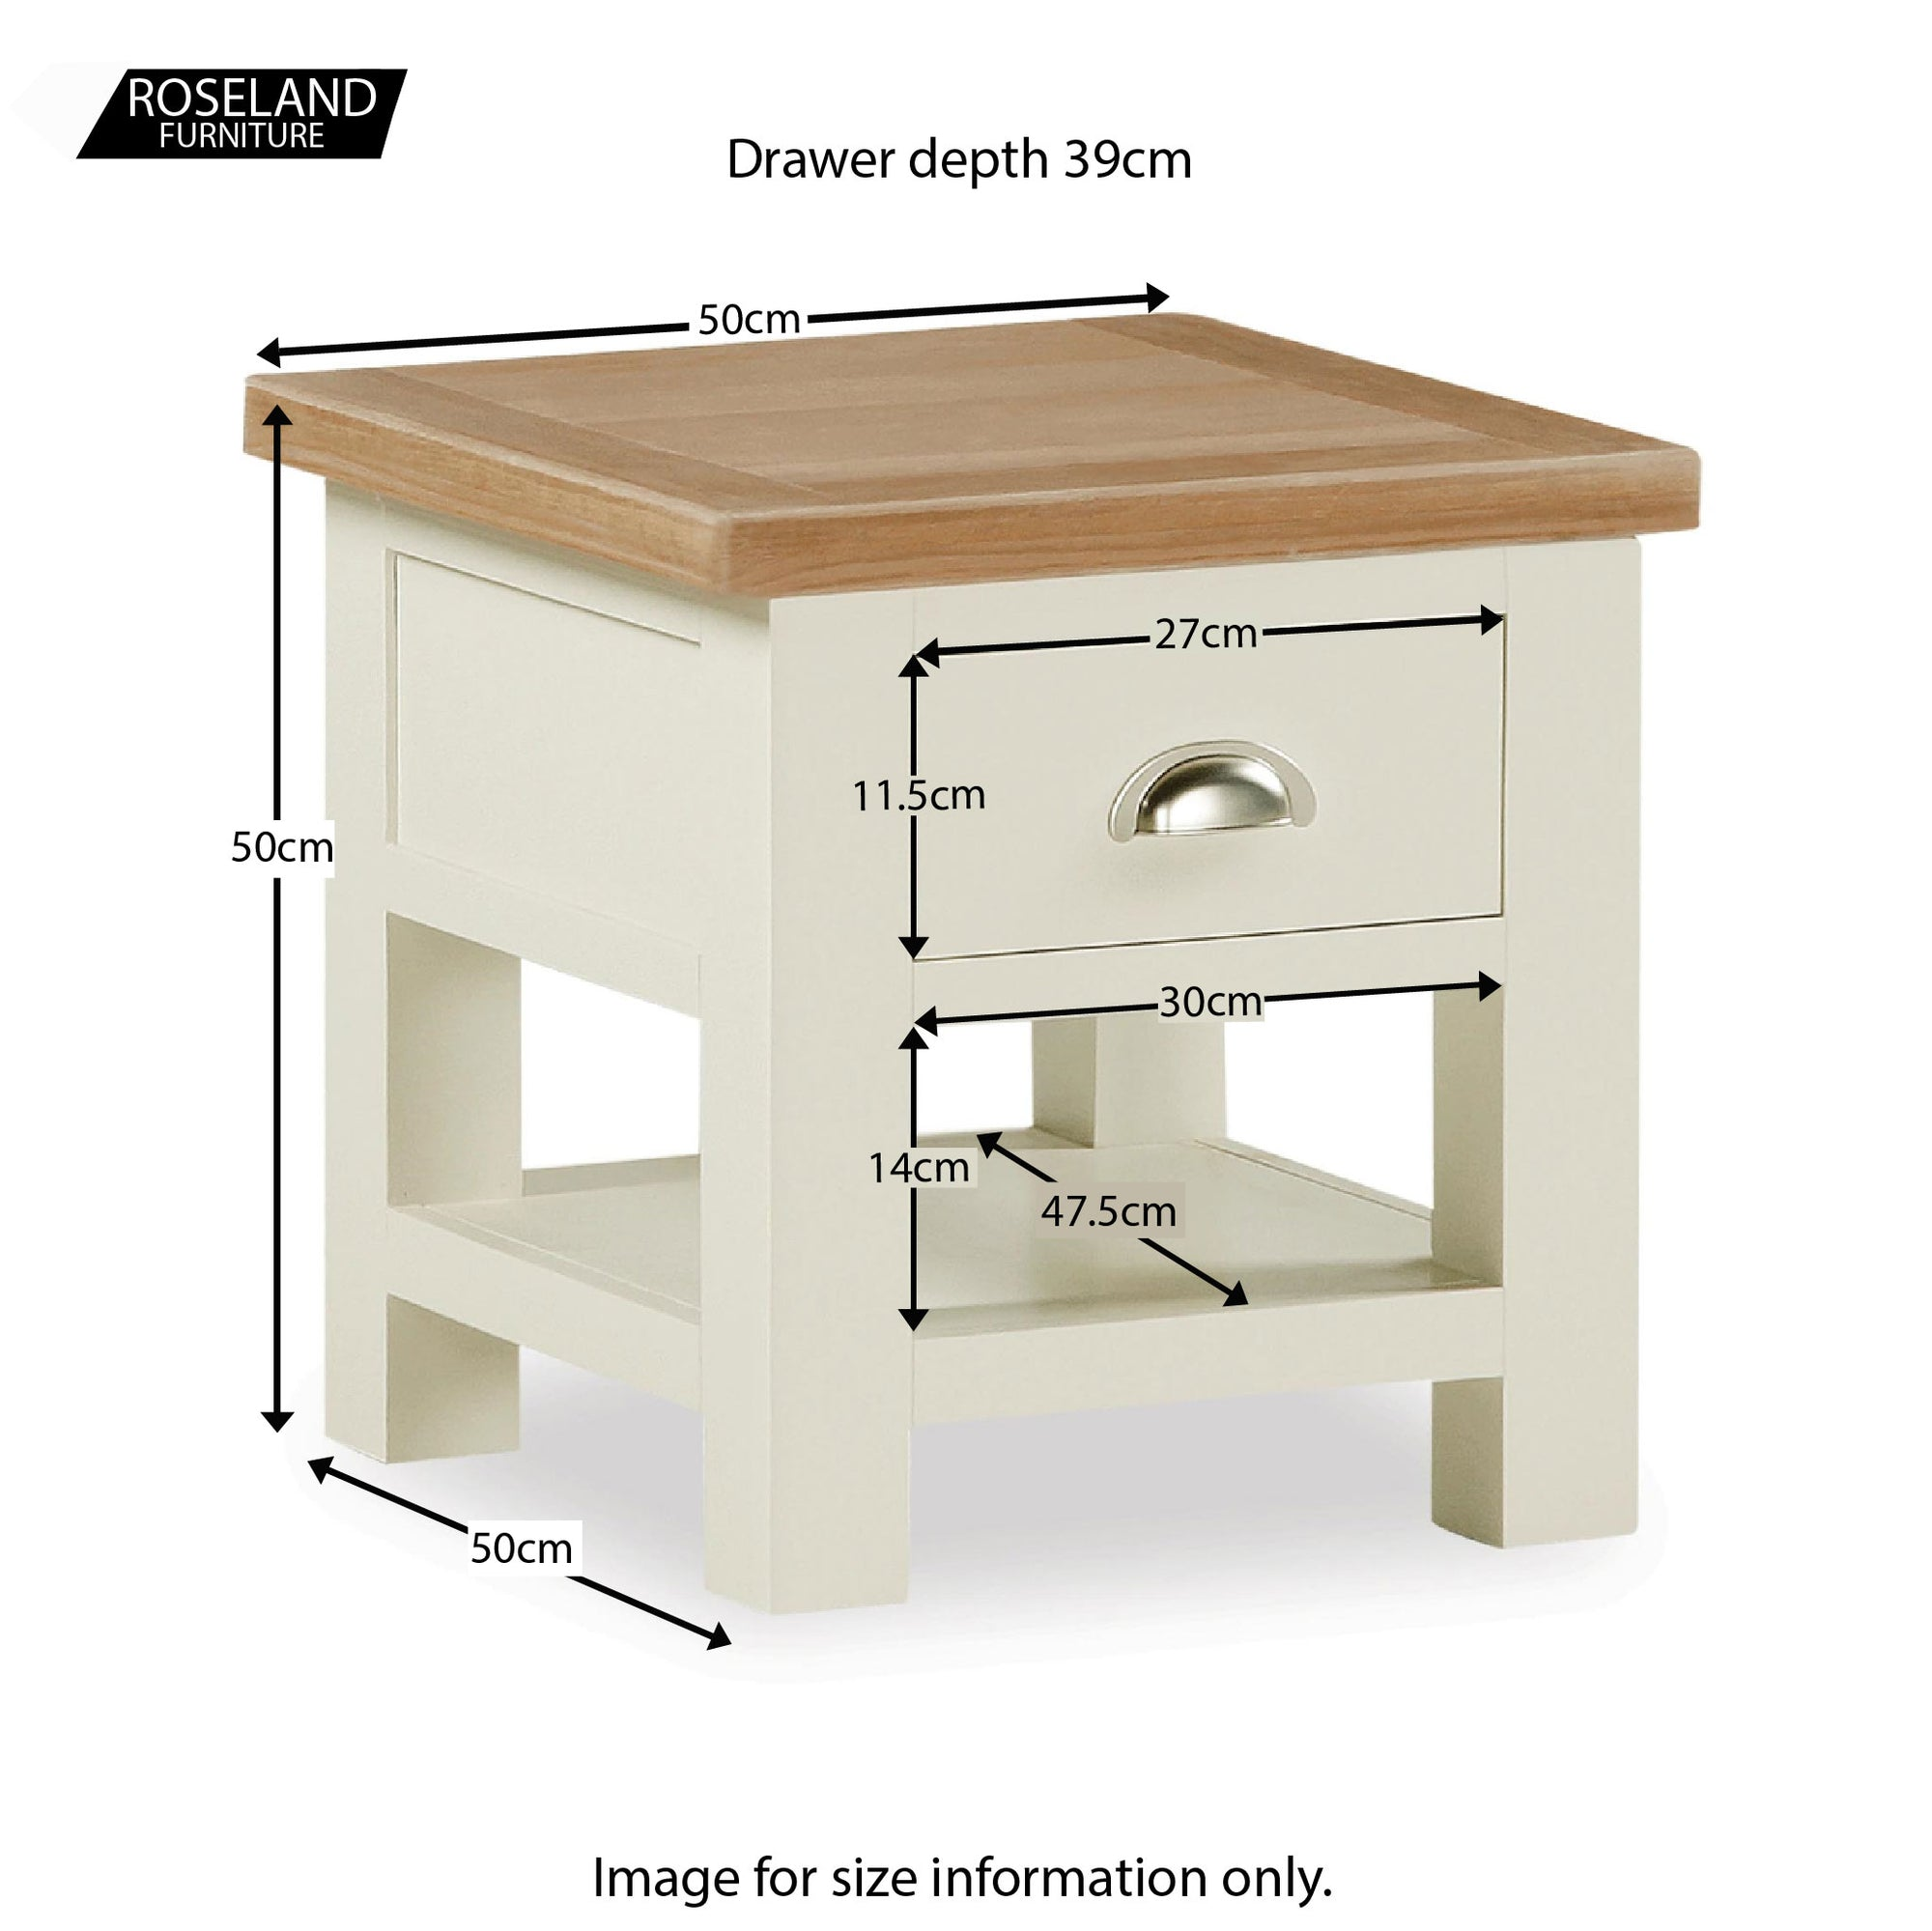 Daymer Cream Painted Side Lamp Table With Storage Drawer Roseland Furniture